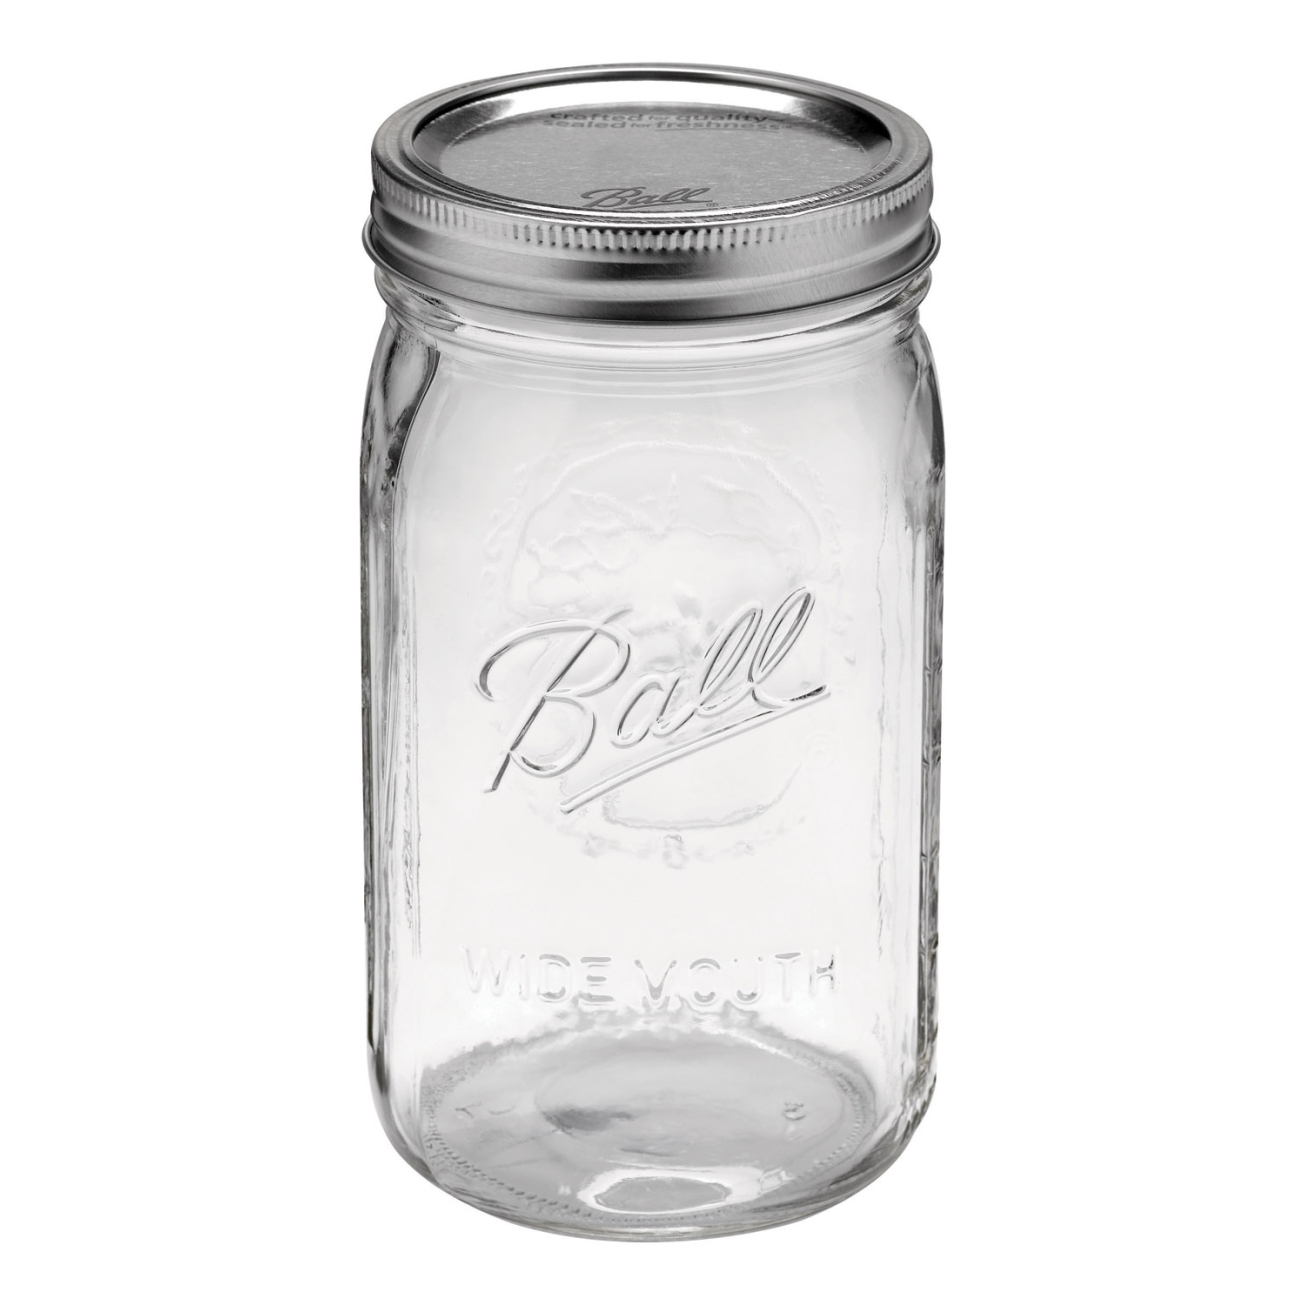 12 x Mason Wide Mouth Canning Jars Quart (32 oz) - Brow Farm Online Store